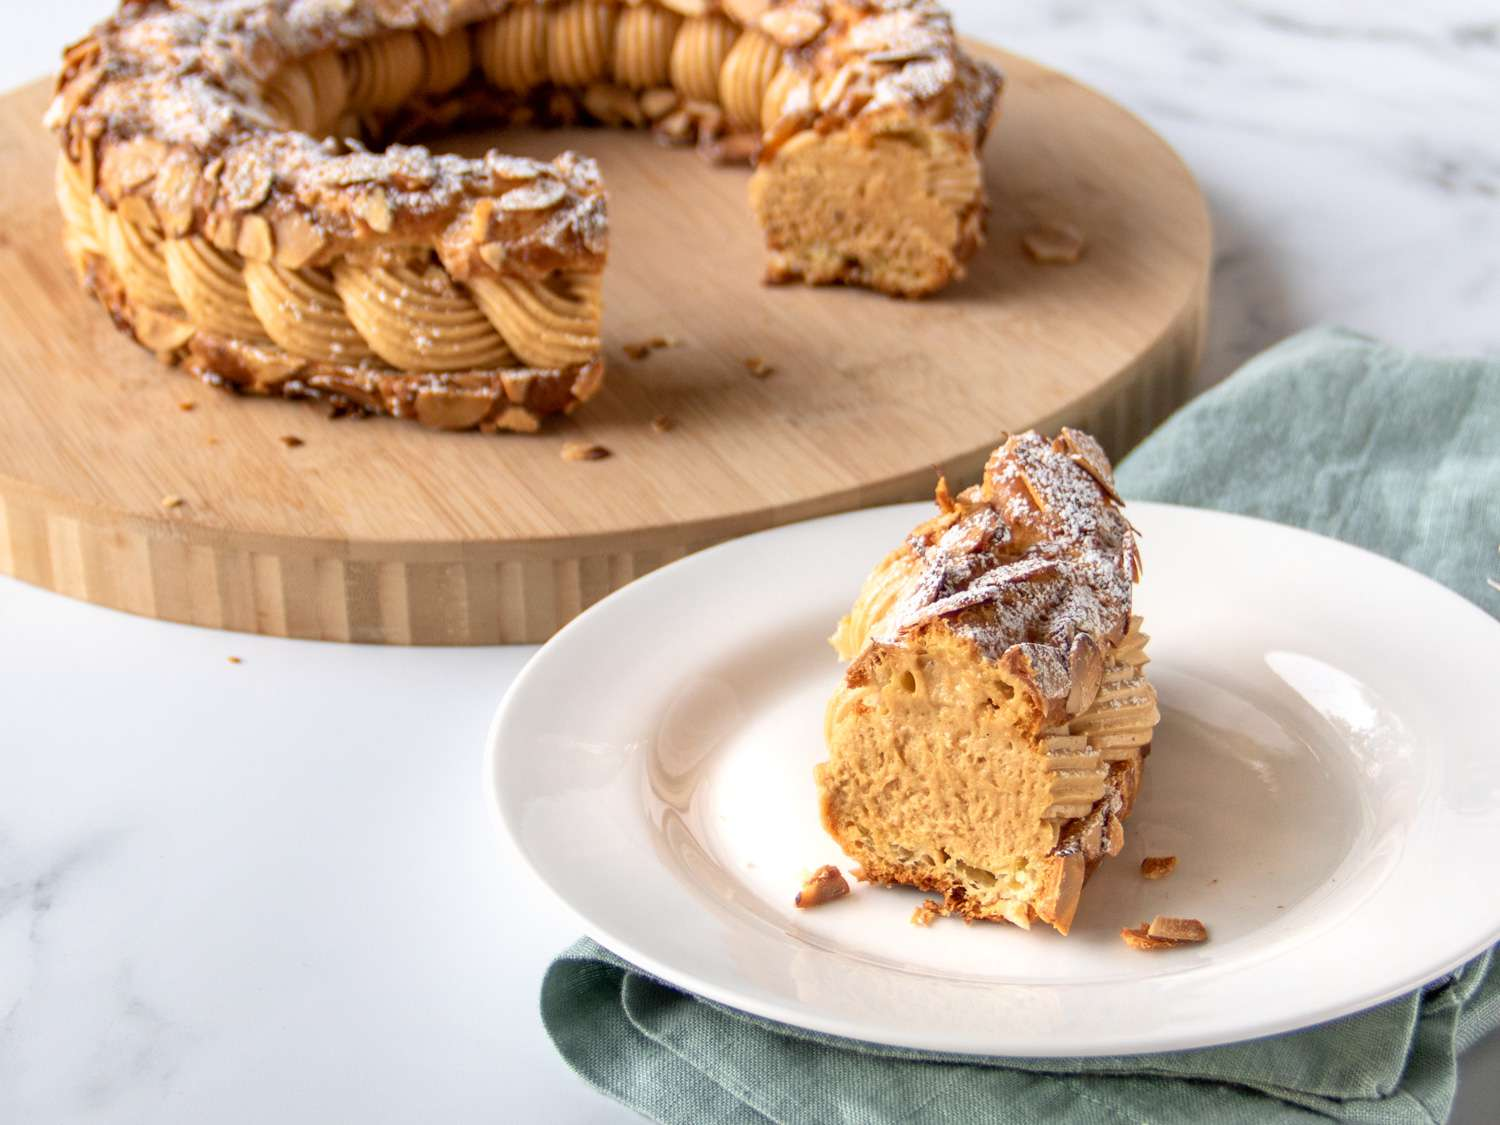 a slice of Paris-brest on a plate with the rest in the background